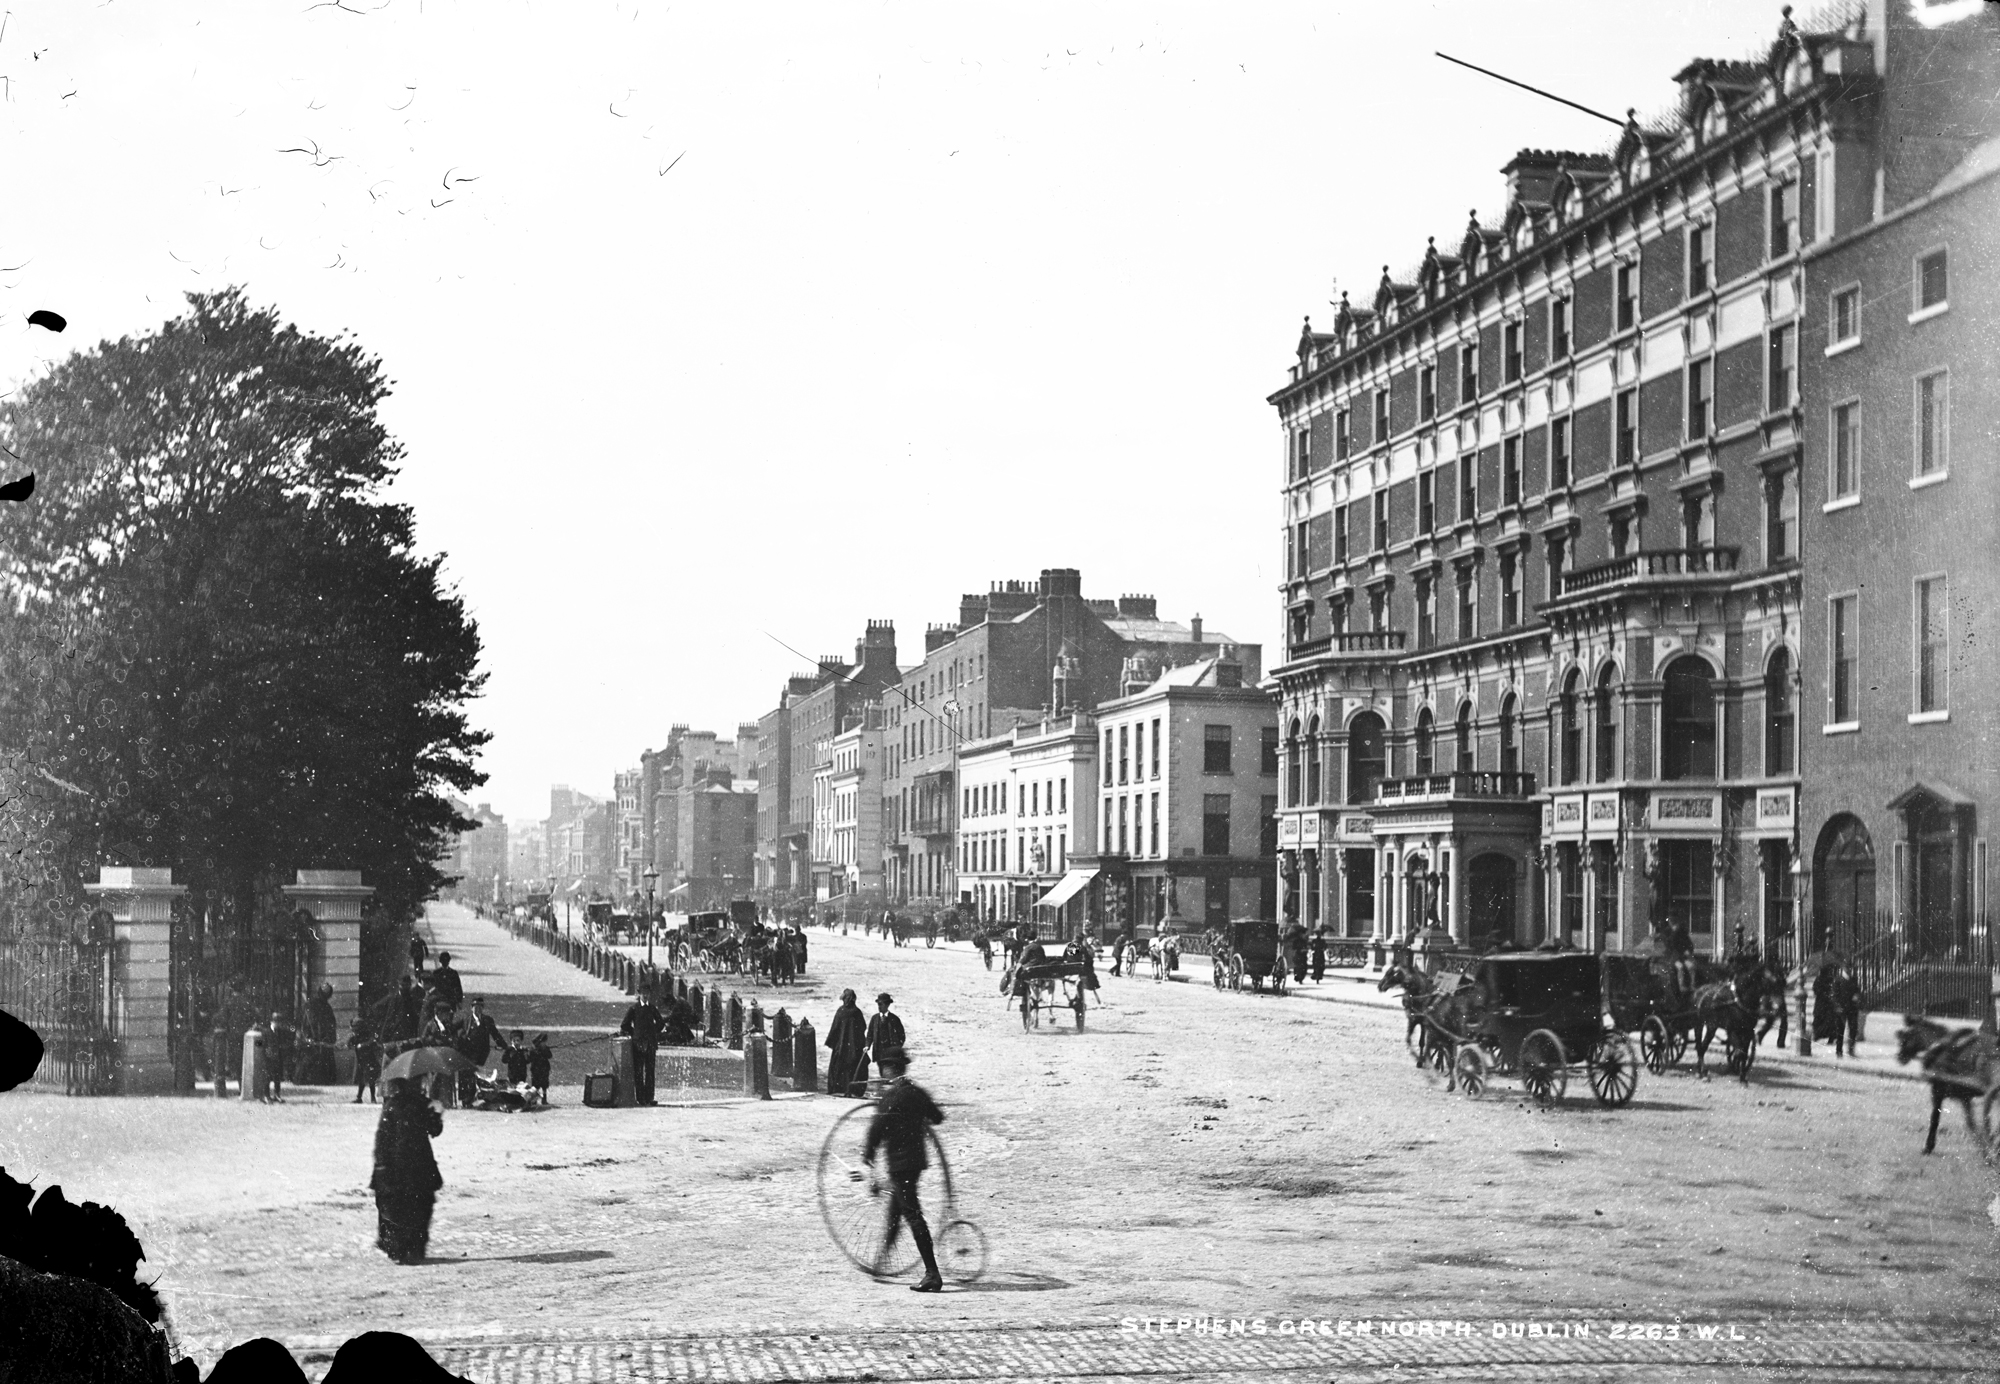 St. Stephen's Green, Dublin City, showing the Shelbourne Hotel, c. 1880–1900.